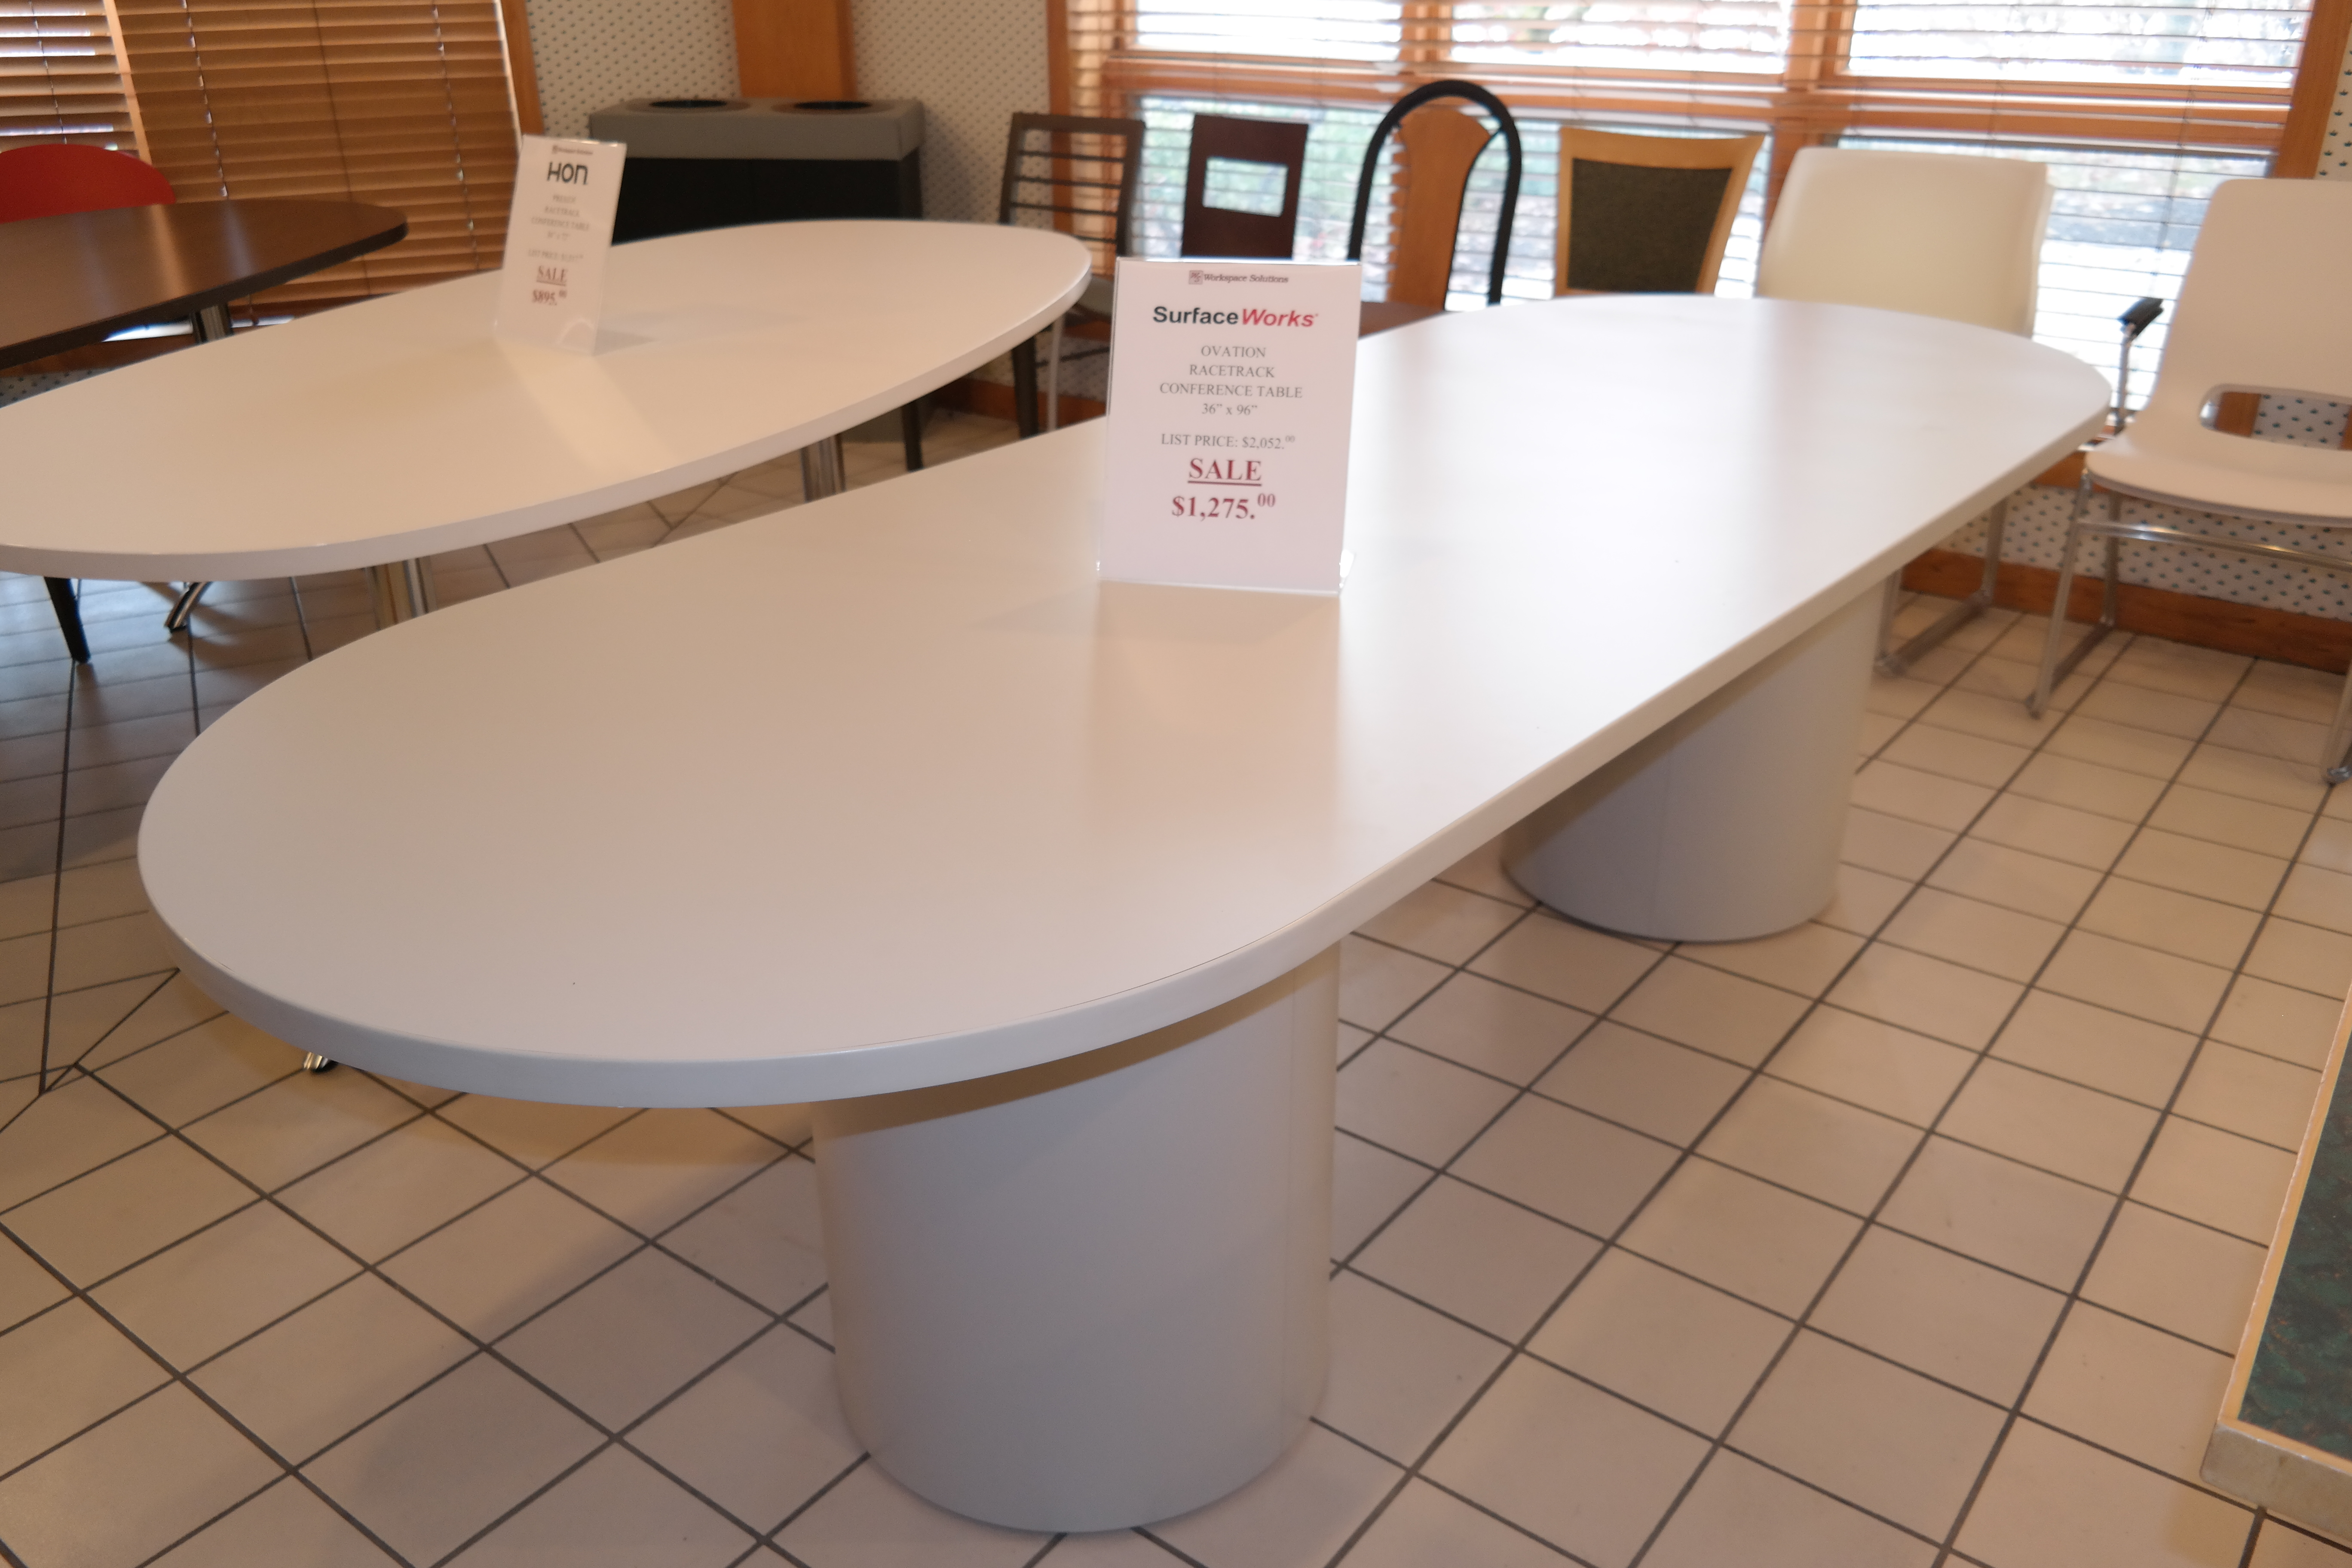 used conference table chairs target foldable beach office furniture archives workspace